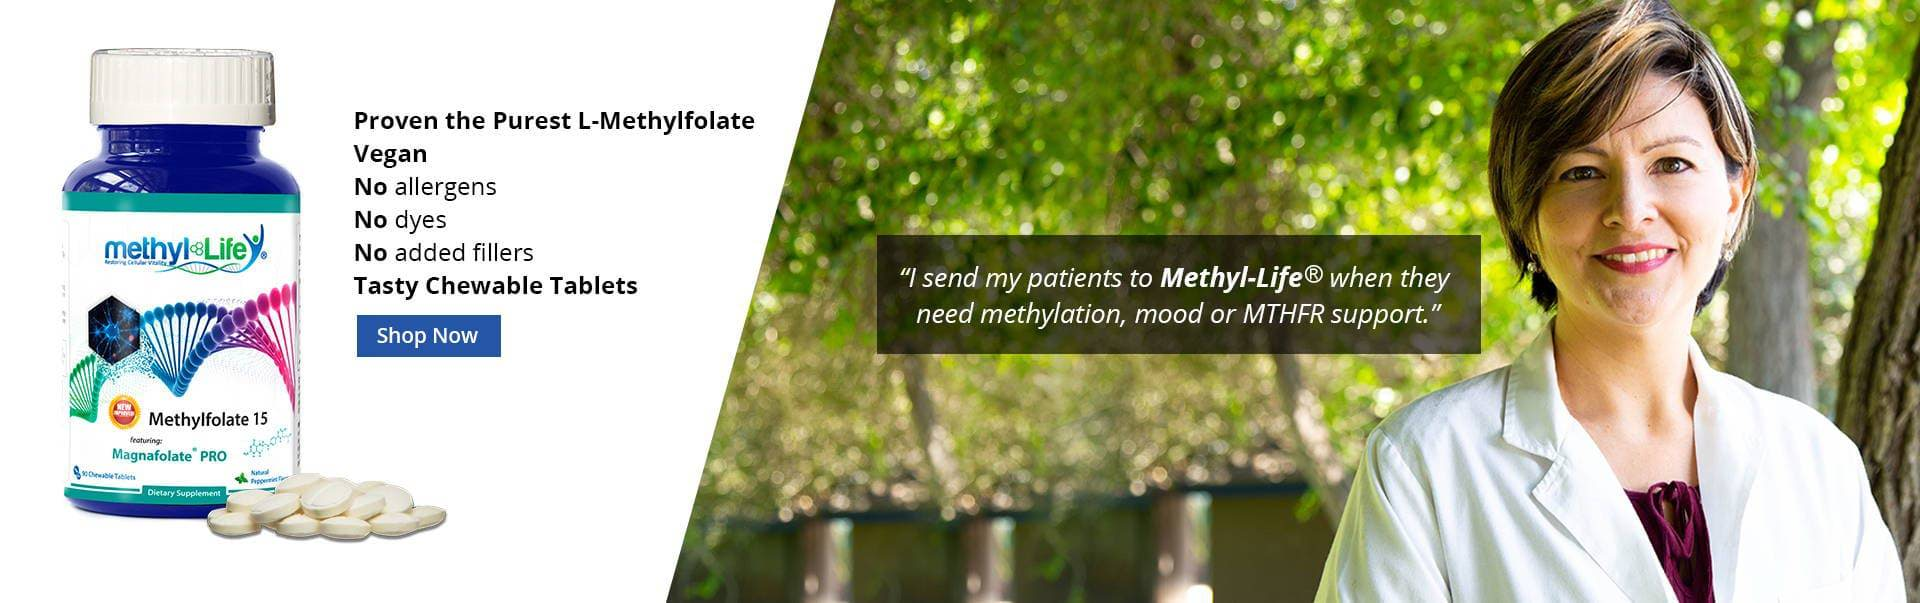 l-methylfolate supplements